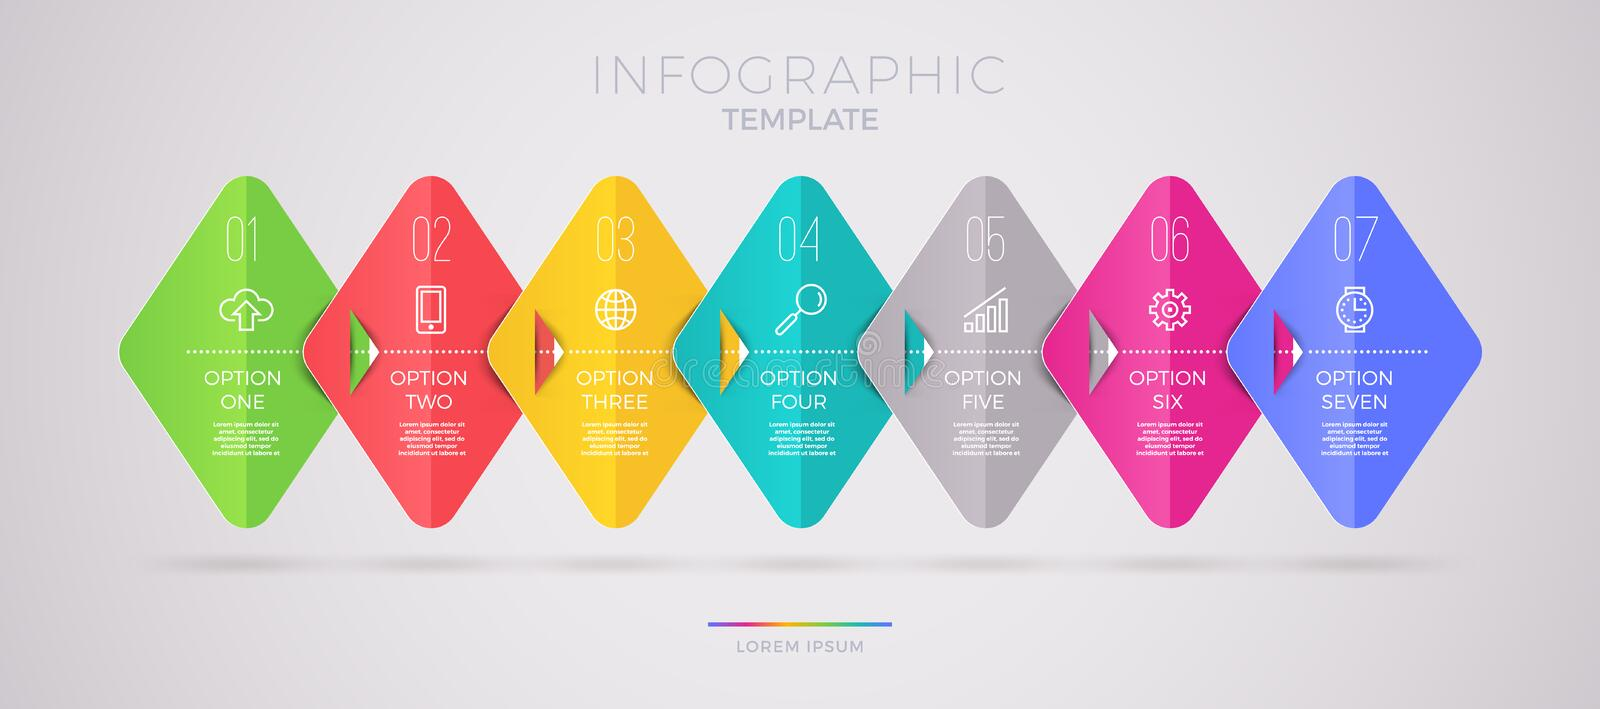 Infographic template design with business icons. Flow chart witn seven options or steps. Infographic business concept. Design for presentation, promotion vector illustration